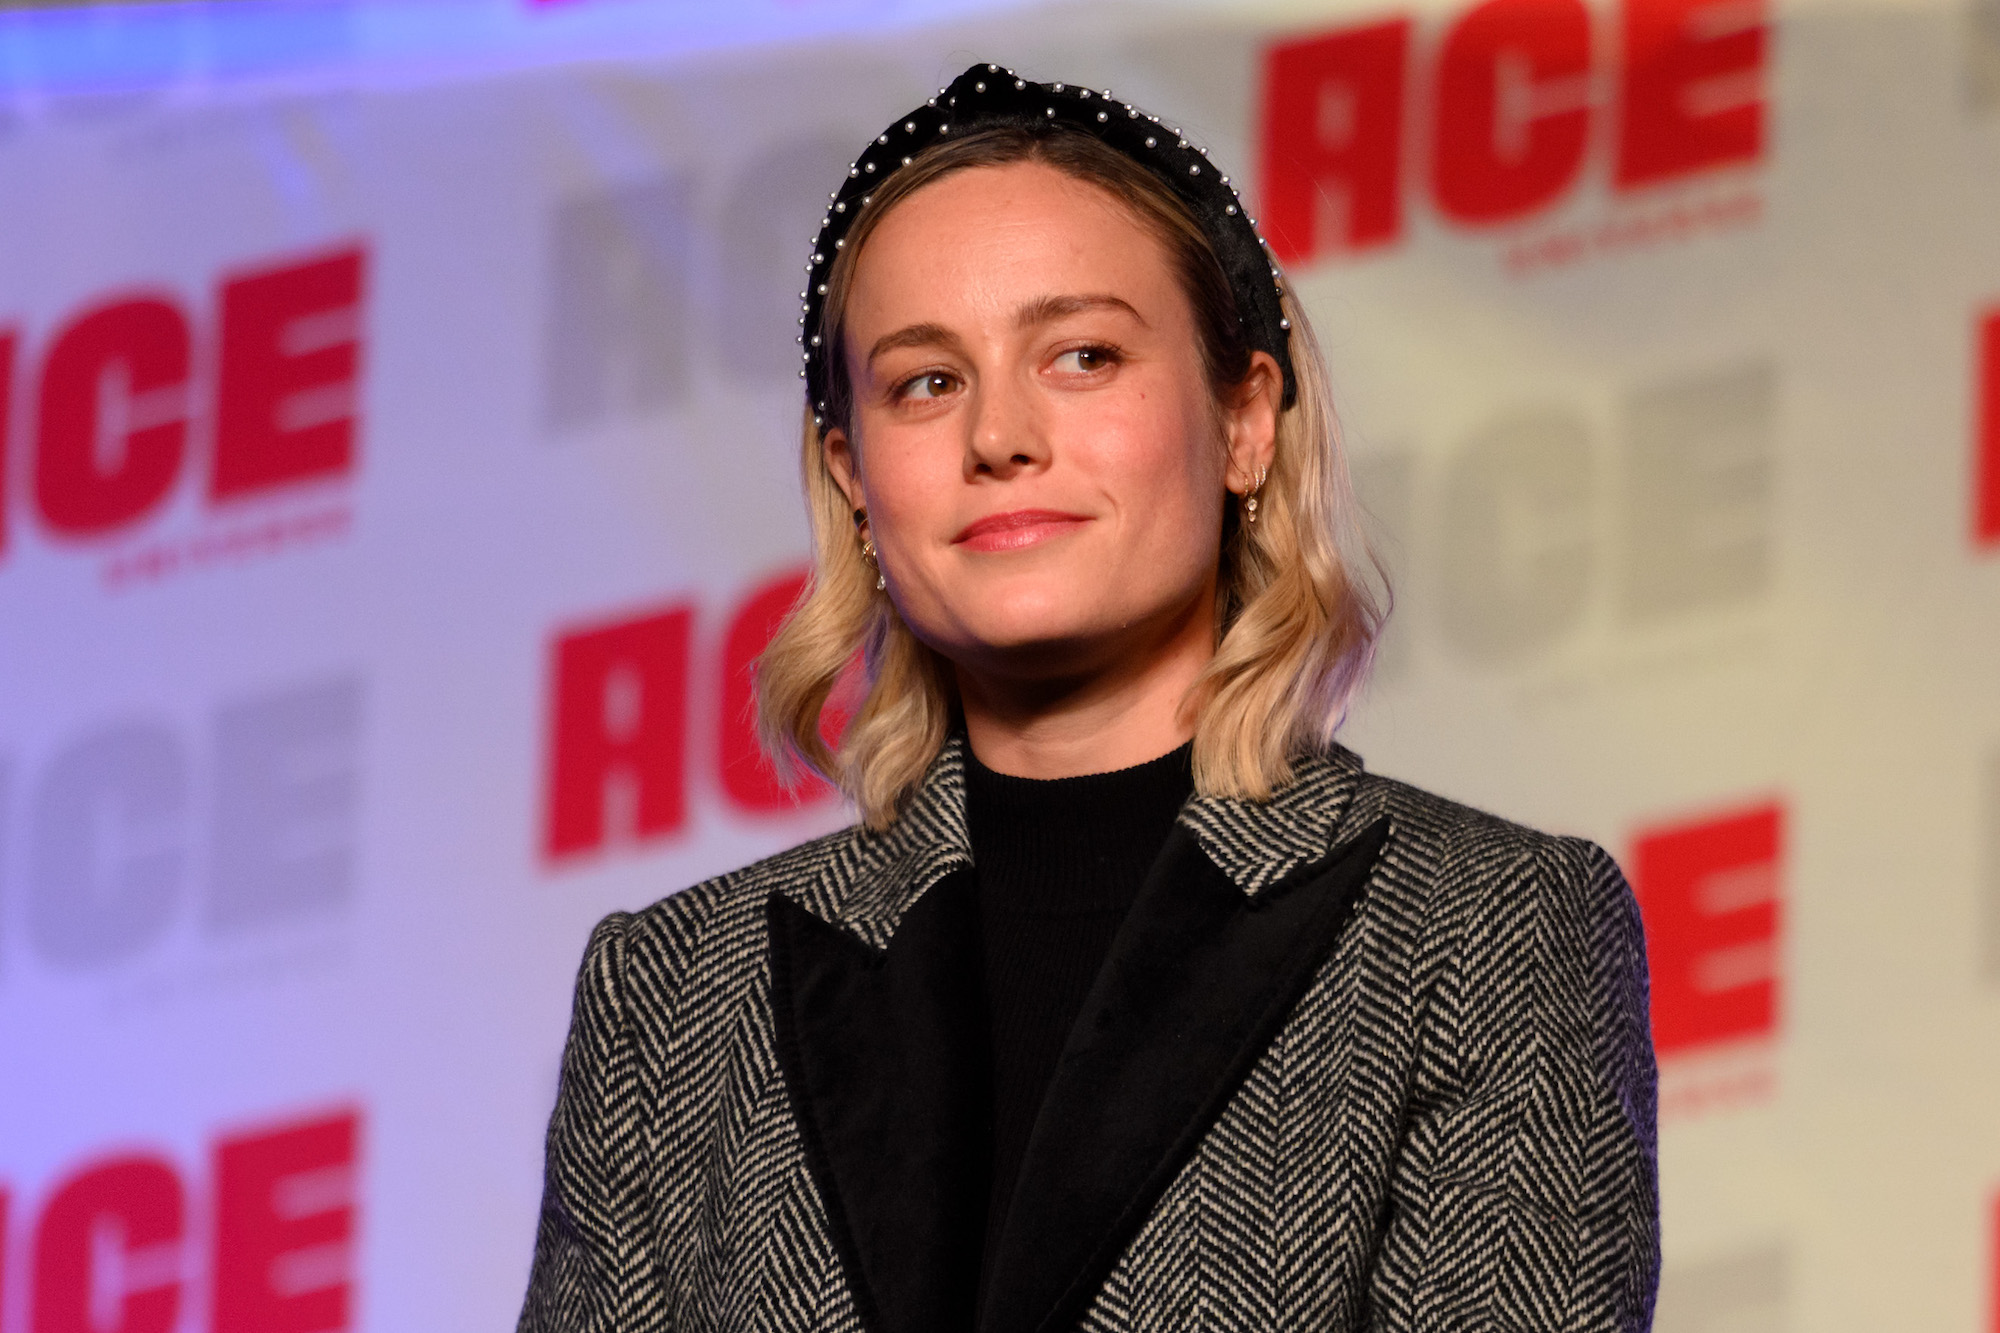 Brie Larson at ACE Comic Con Midwest on October 12, 2019 in Rosemont, Illinois.